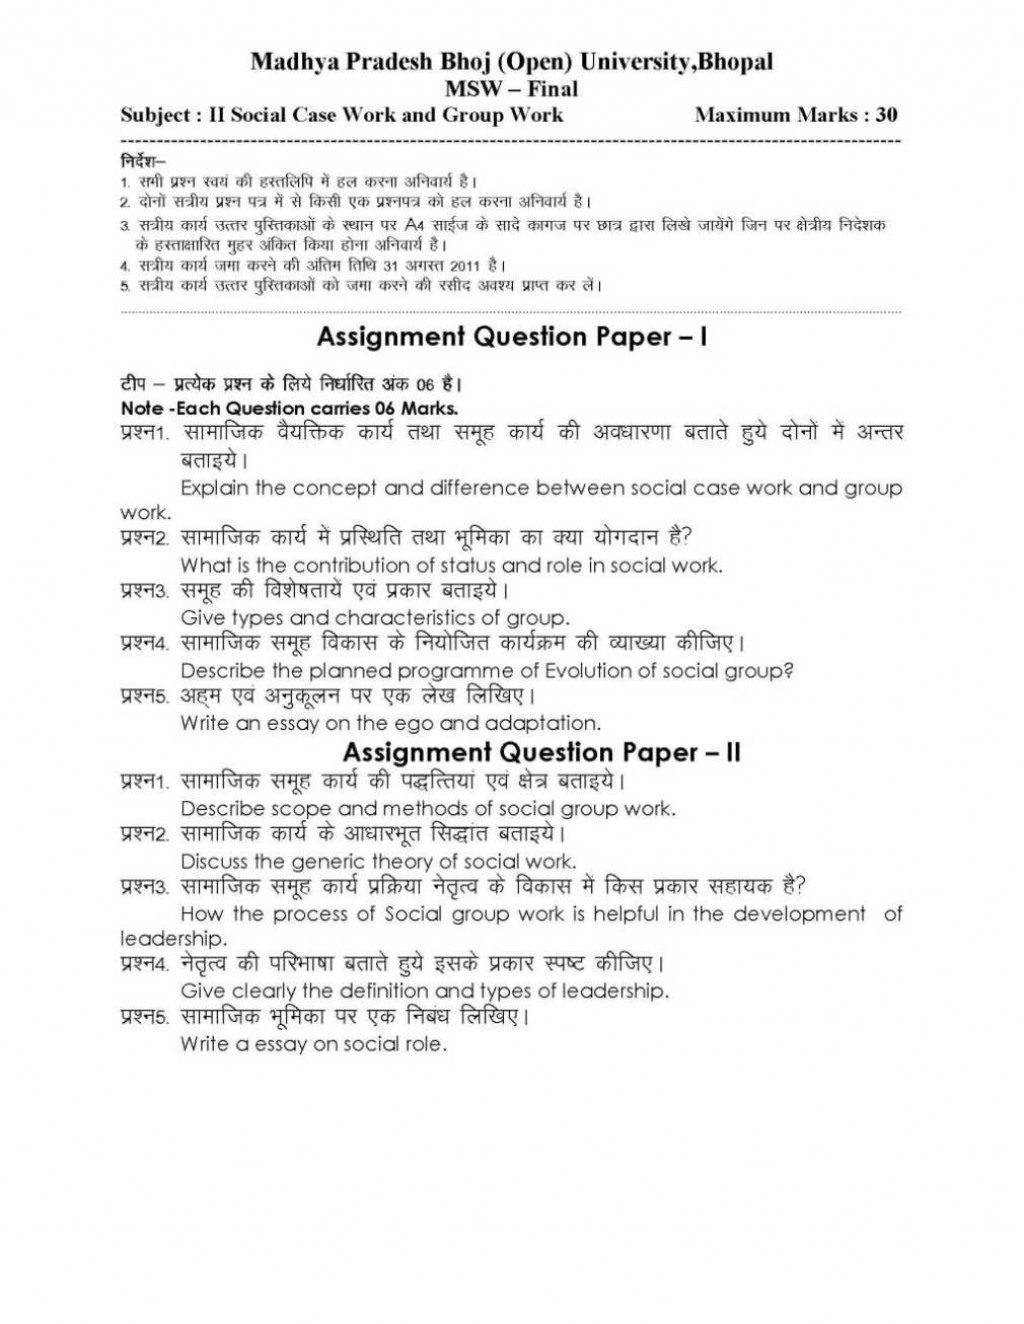 011 Bhoj University Bhopal Msw Leadership Experience Essay Dreaded For Scholarship Describe Your Examples Large